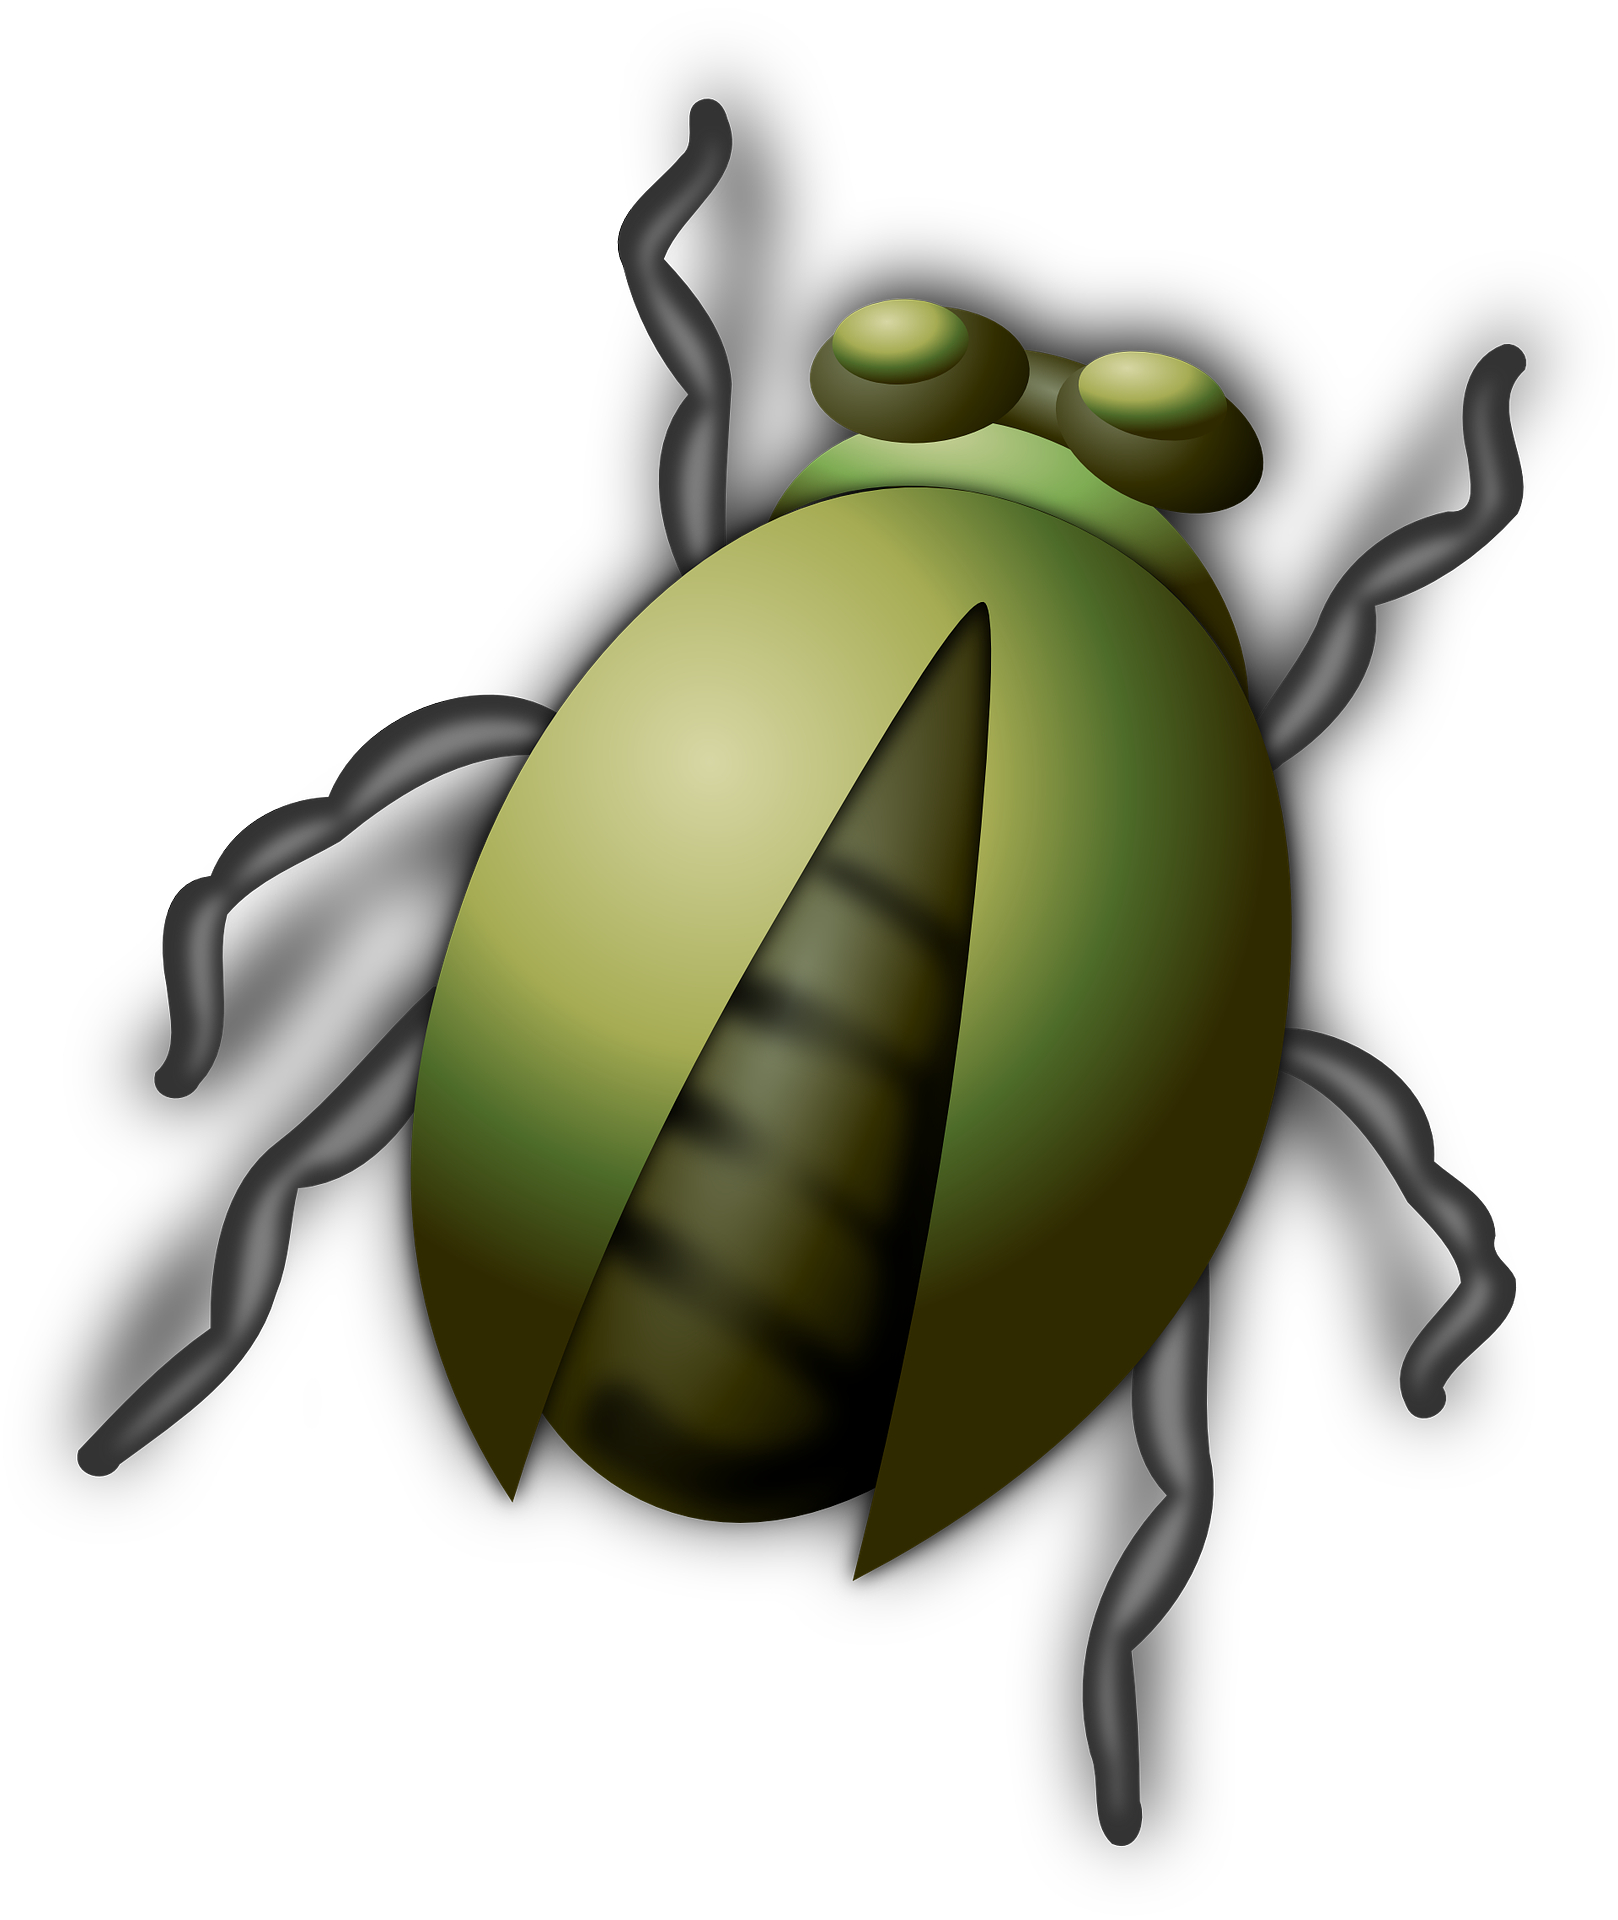 Green cartoon animal,beetle,bug,insect vector